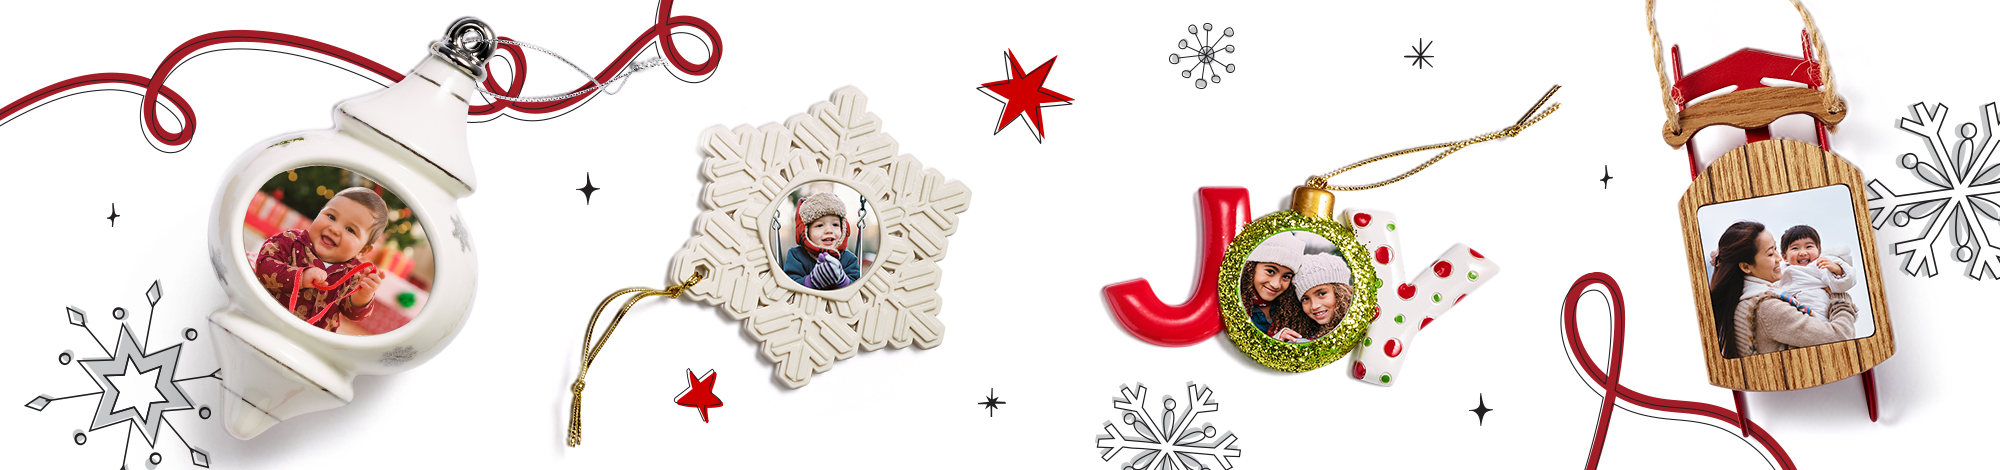 Ornaments make the perfect holiday photo gift